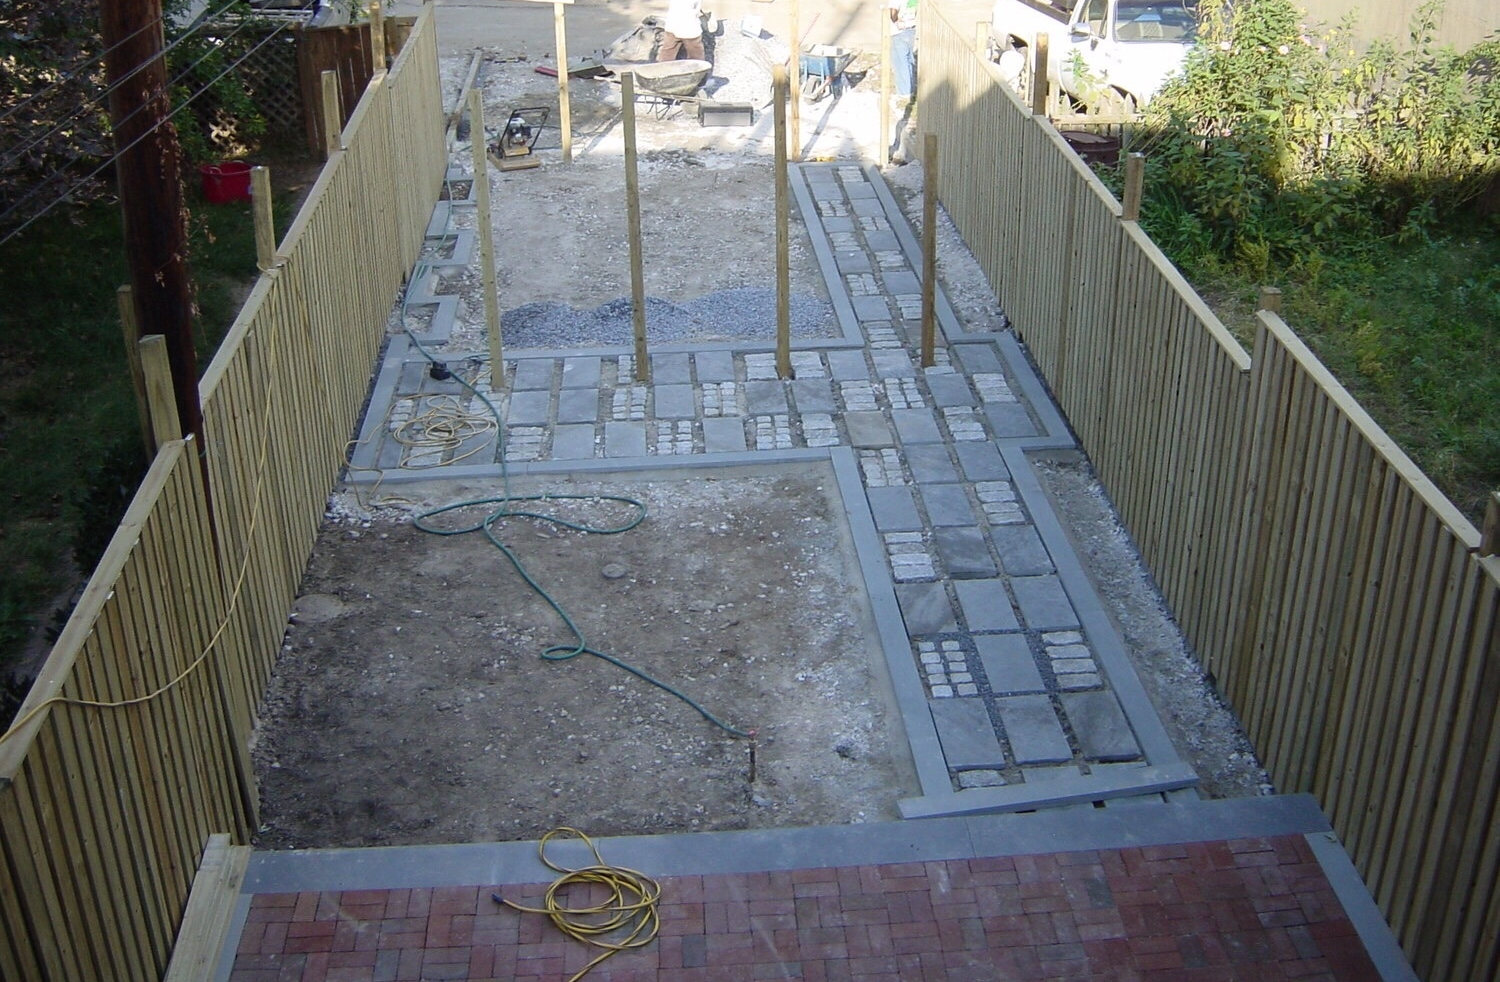 Hardscape elements of the garden begin to take shape : the new fence, the bluestone-and-granite path that leads to the driveway-to-be, and the raised brick terrace for entertaining. ©2018 Twelve gardens ltd.